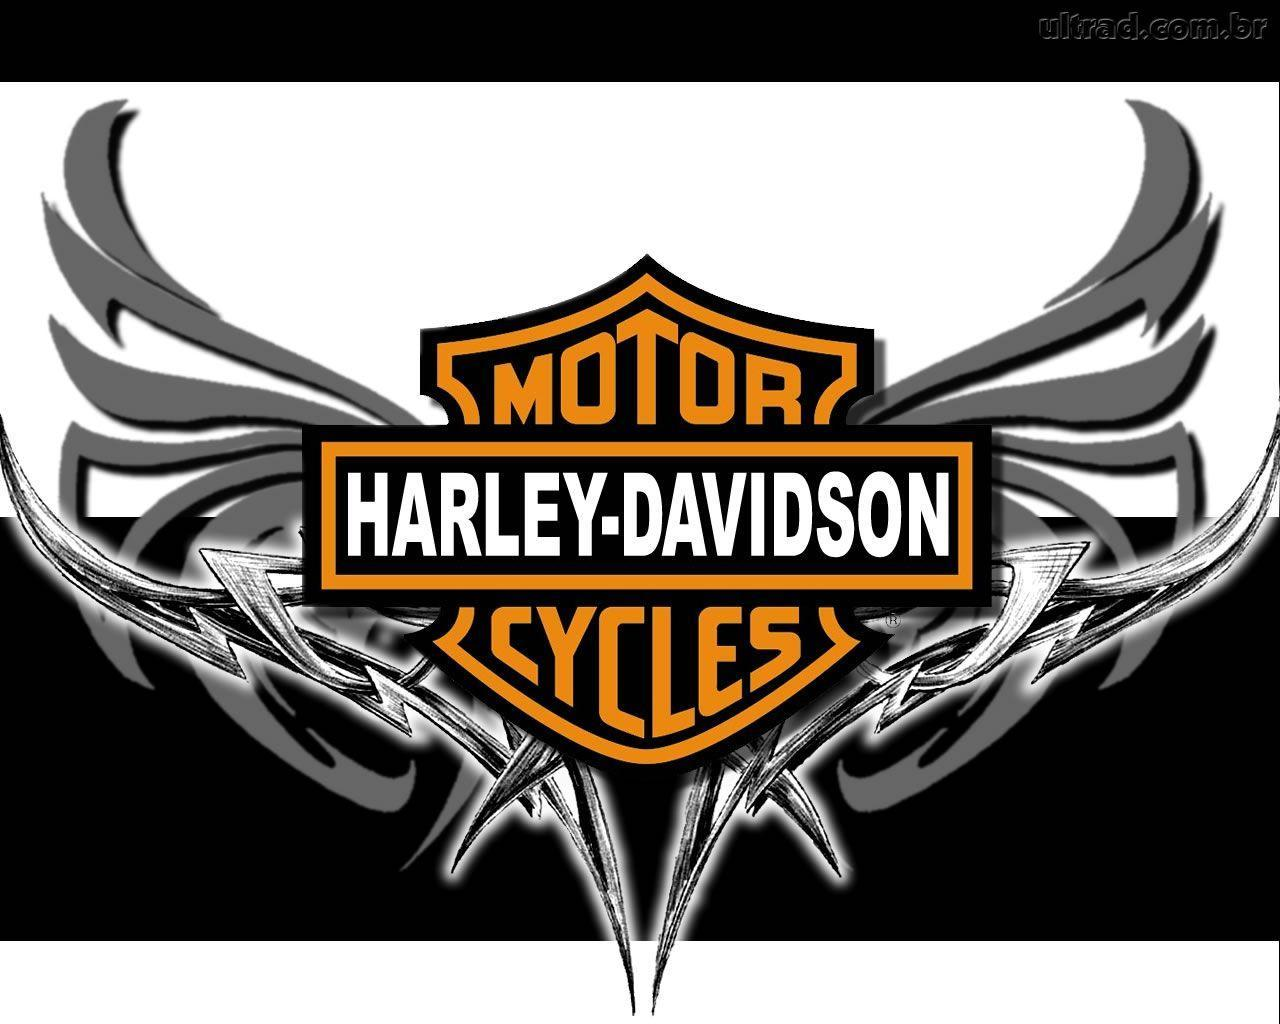 newest harley davidson logo wallpapers - photo #26